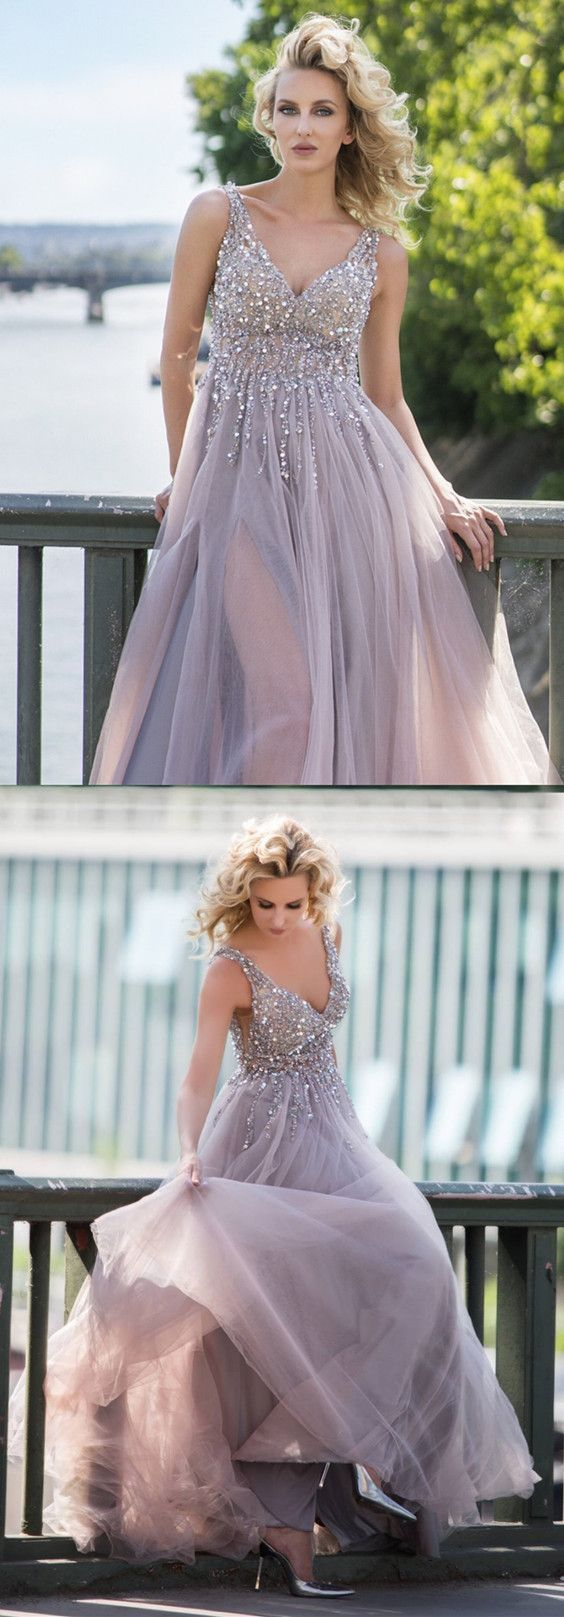 Gray tulle prom dresses long sequin beaded vneck formal gowns m